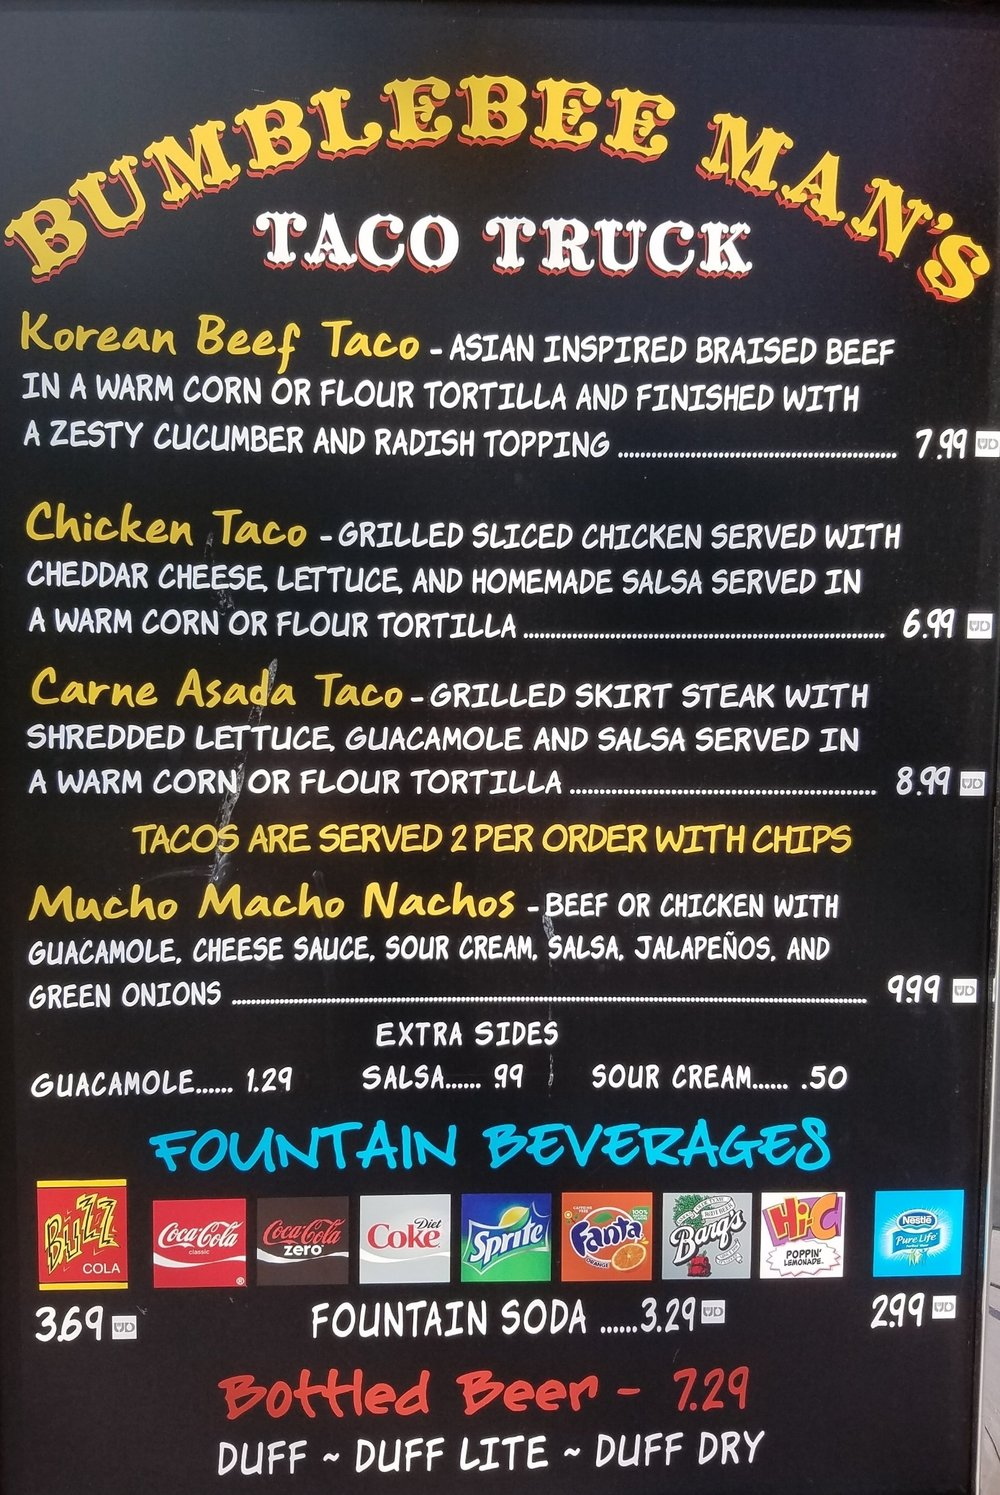 Bumblebee Man's Taco Truck menu with prices.